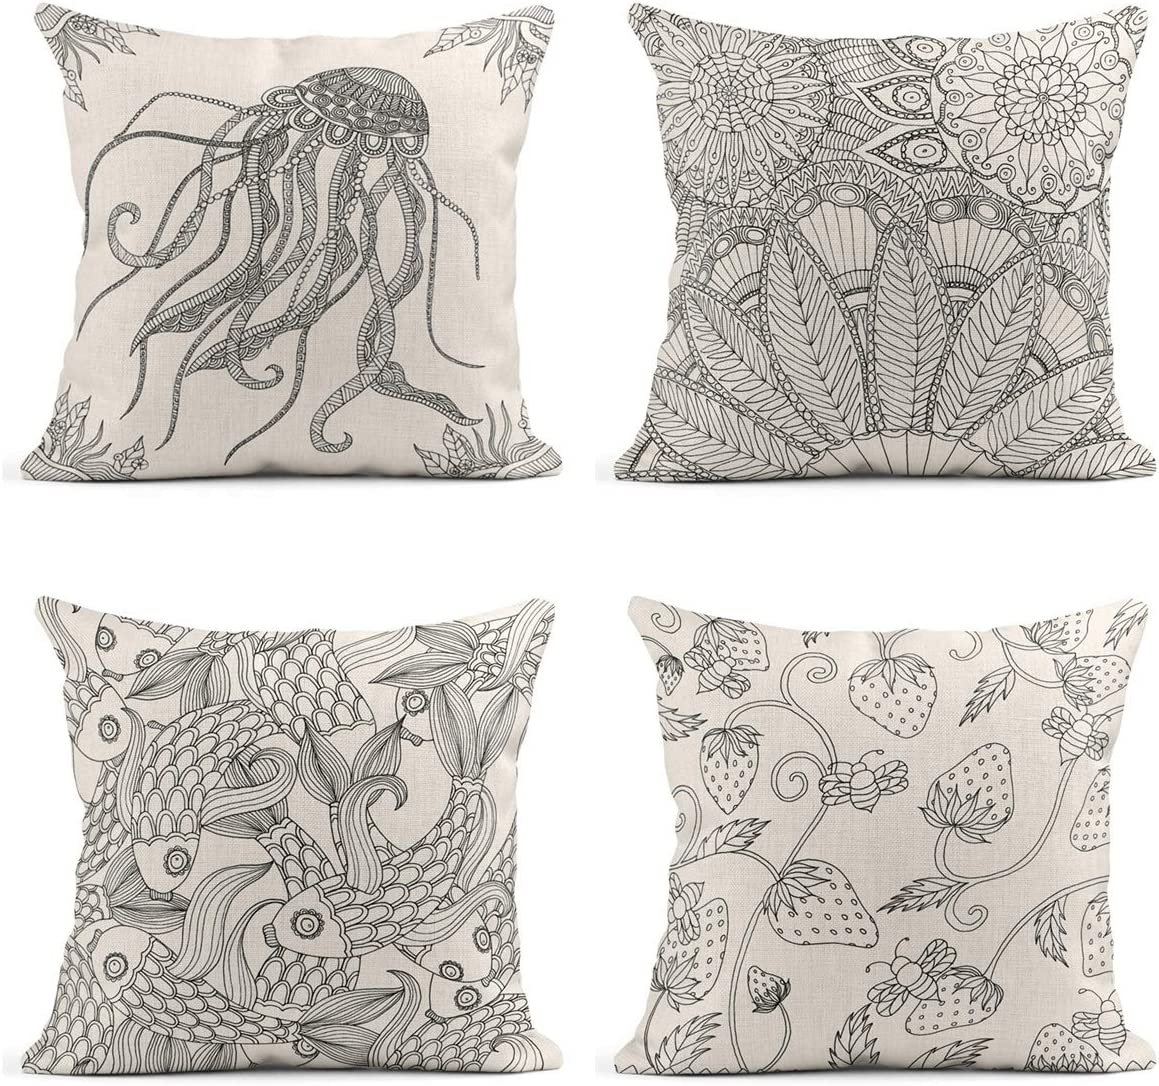 Tarolo Set of 4 Linen Throw Pillow Cover Case Octopus Whale Creatures from The Deep Coastal Modern Contemporary Paper Cut Decorative Pillow Cases Covers Home Decor Square 18 x 18 Inches Pillowcases